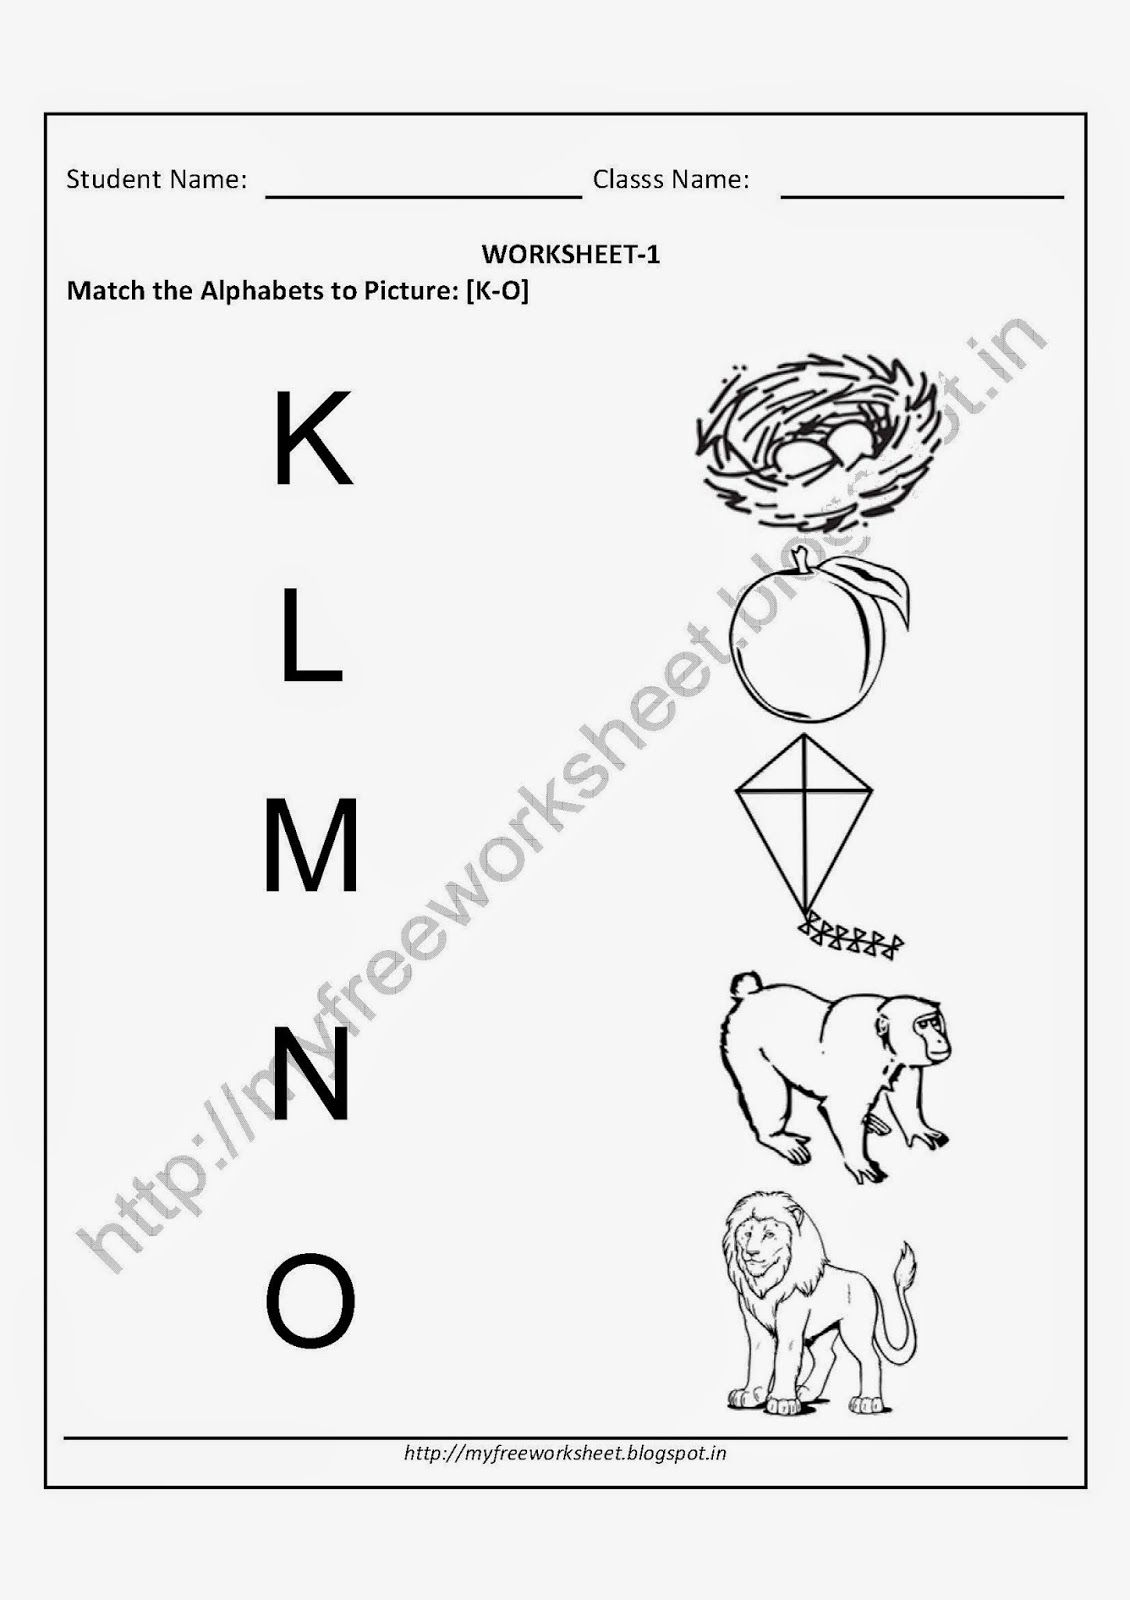 Workbooks worksheets for nursery in english : Image result for worksheets of ALPHABETS nursery students | aarnav ...